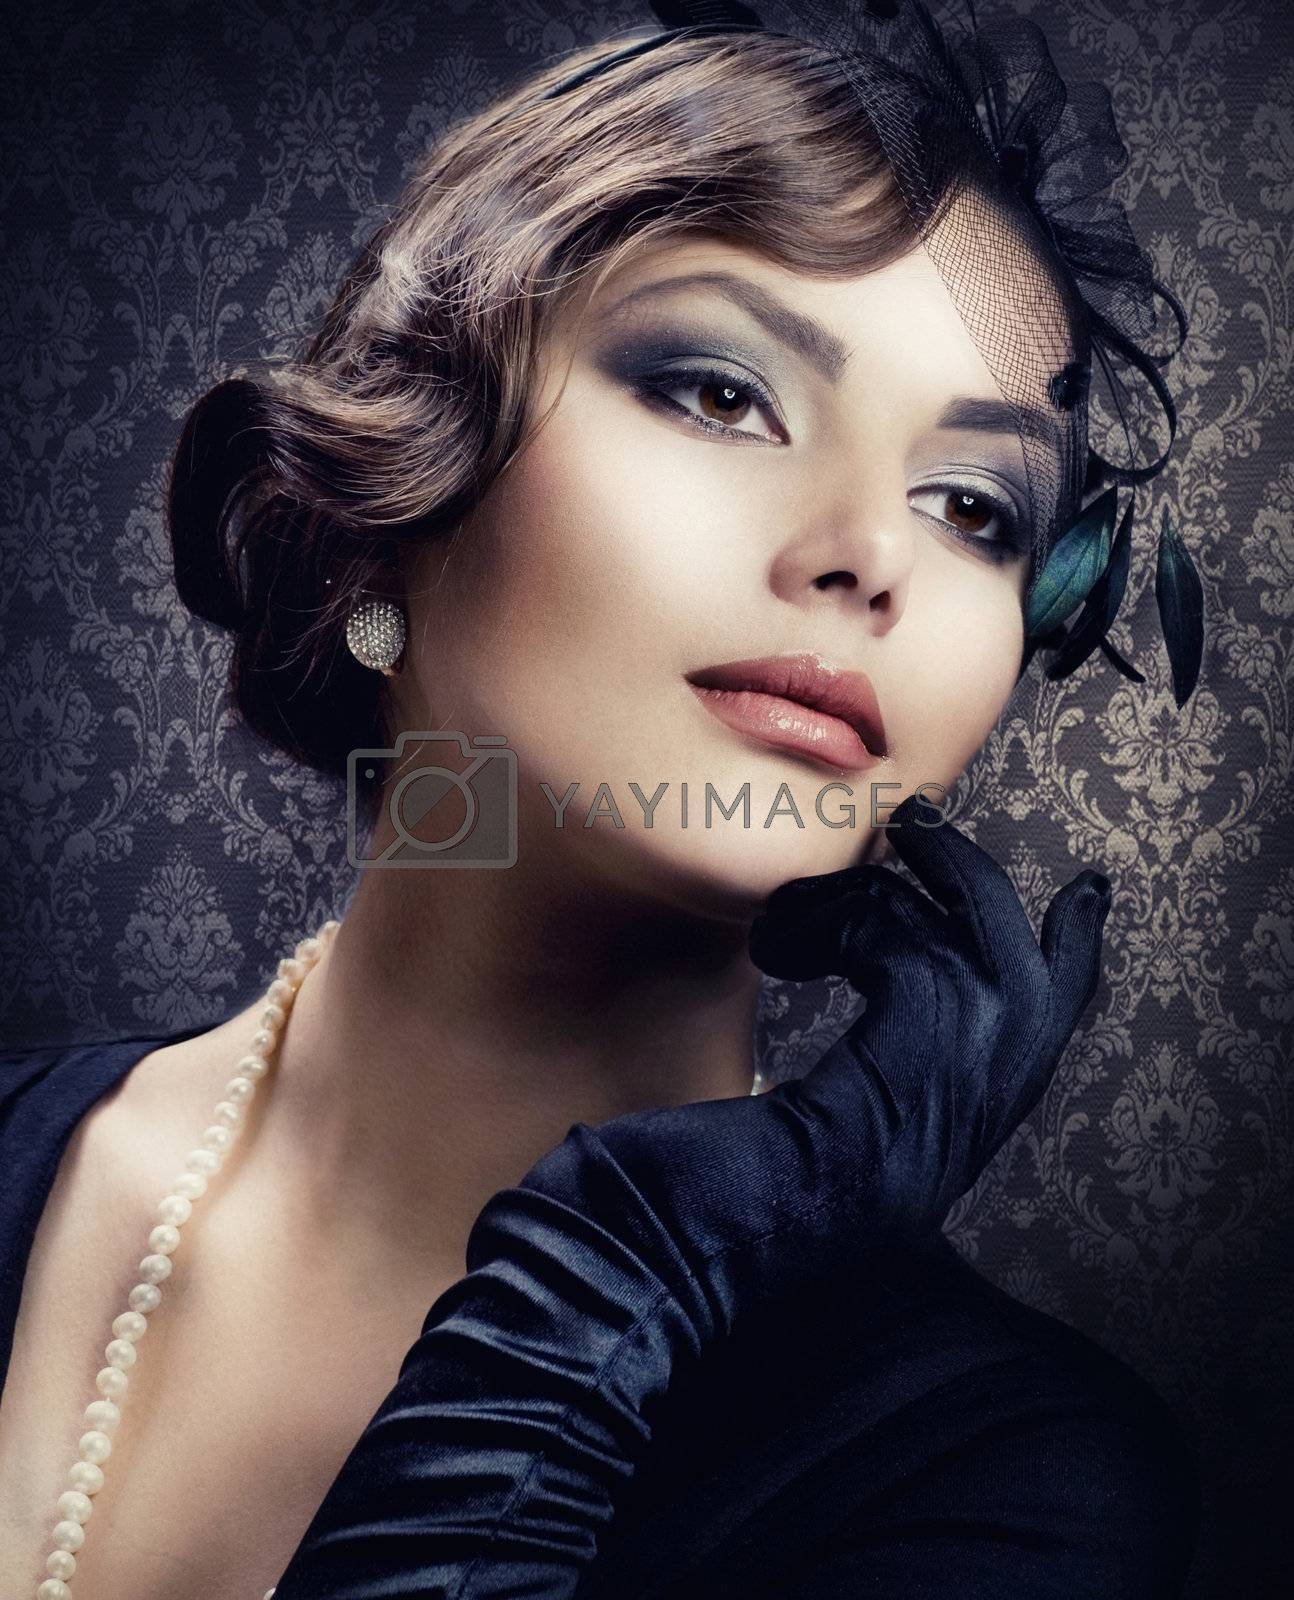 Romantic Beauty. Retro Style by SubbotinaA